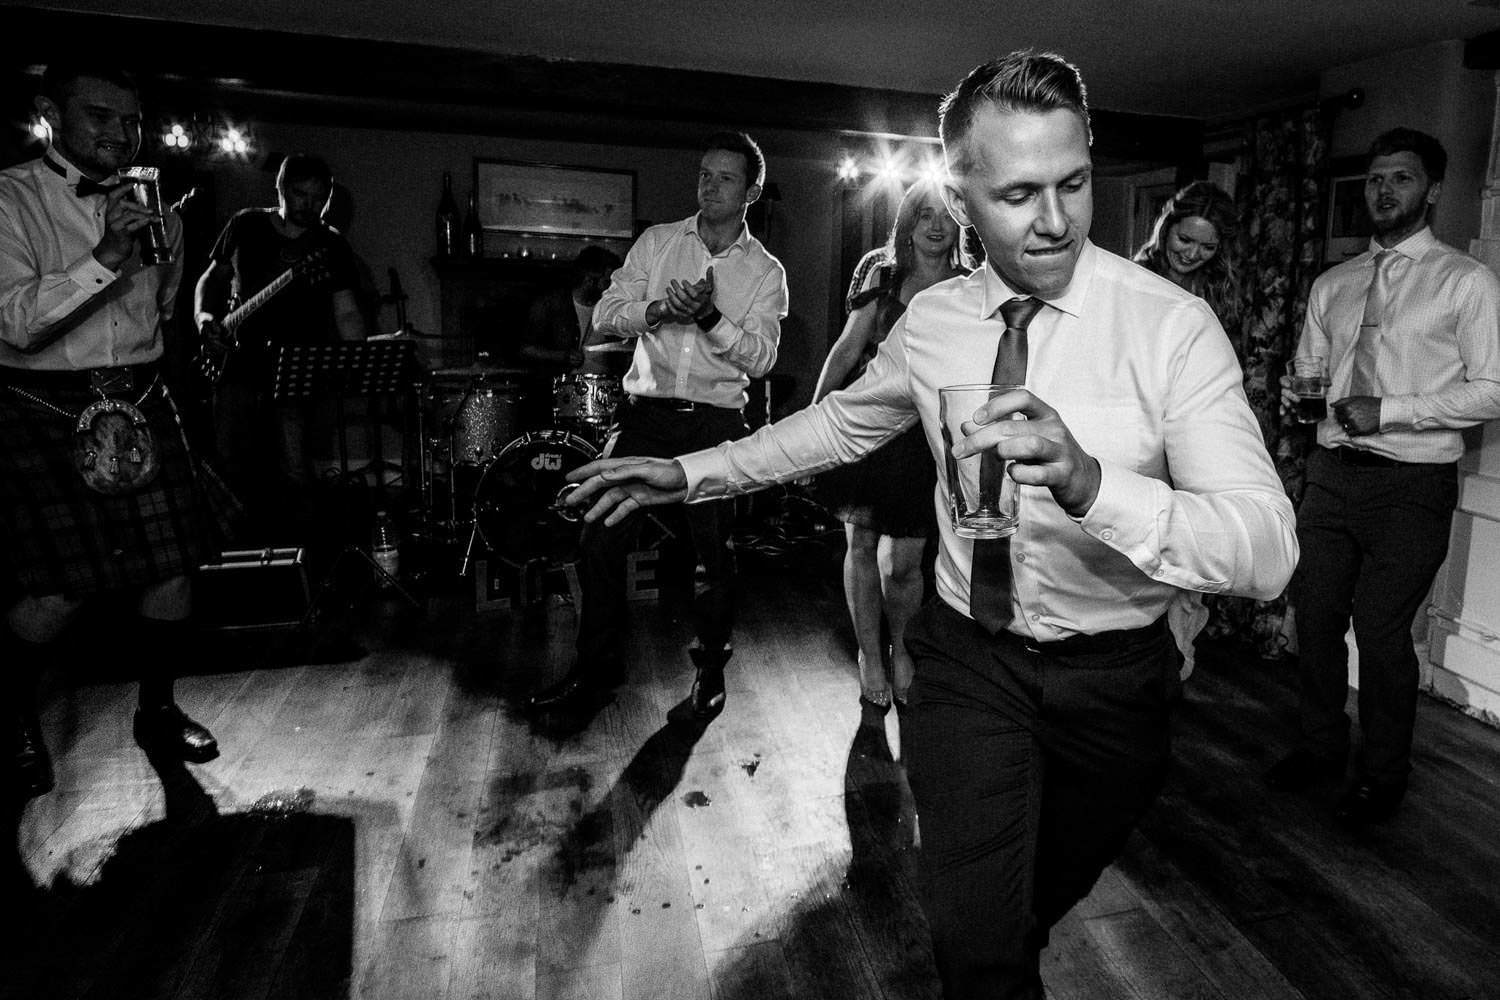 Documentary wedding disco photography at The Punch Bowl Inn, Lake District